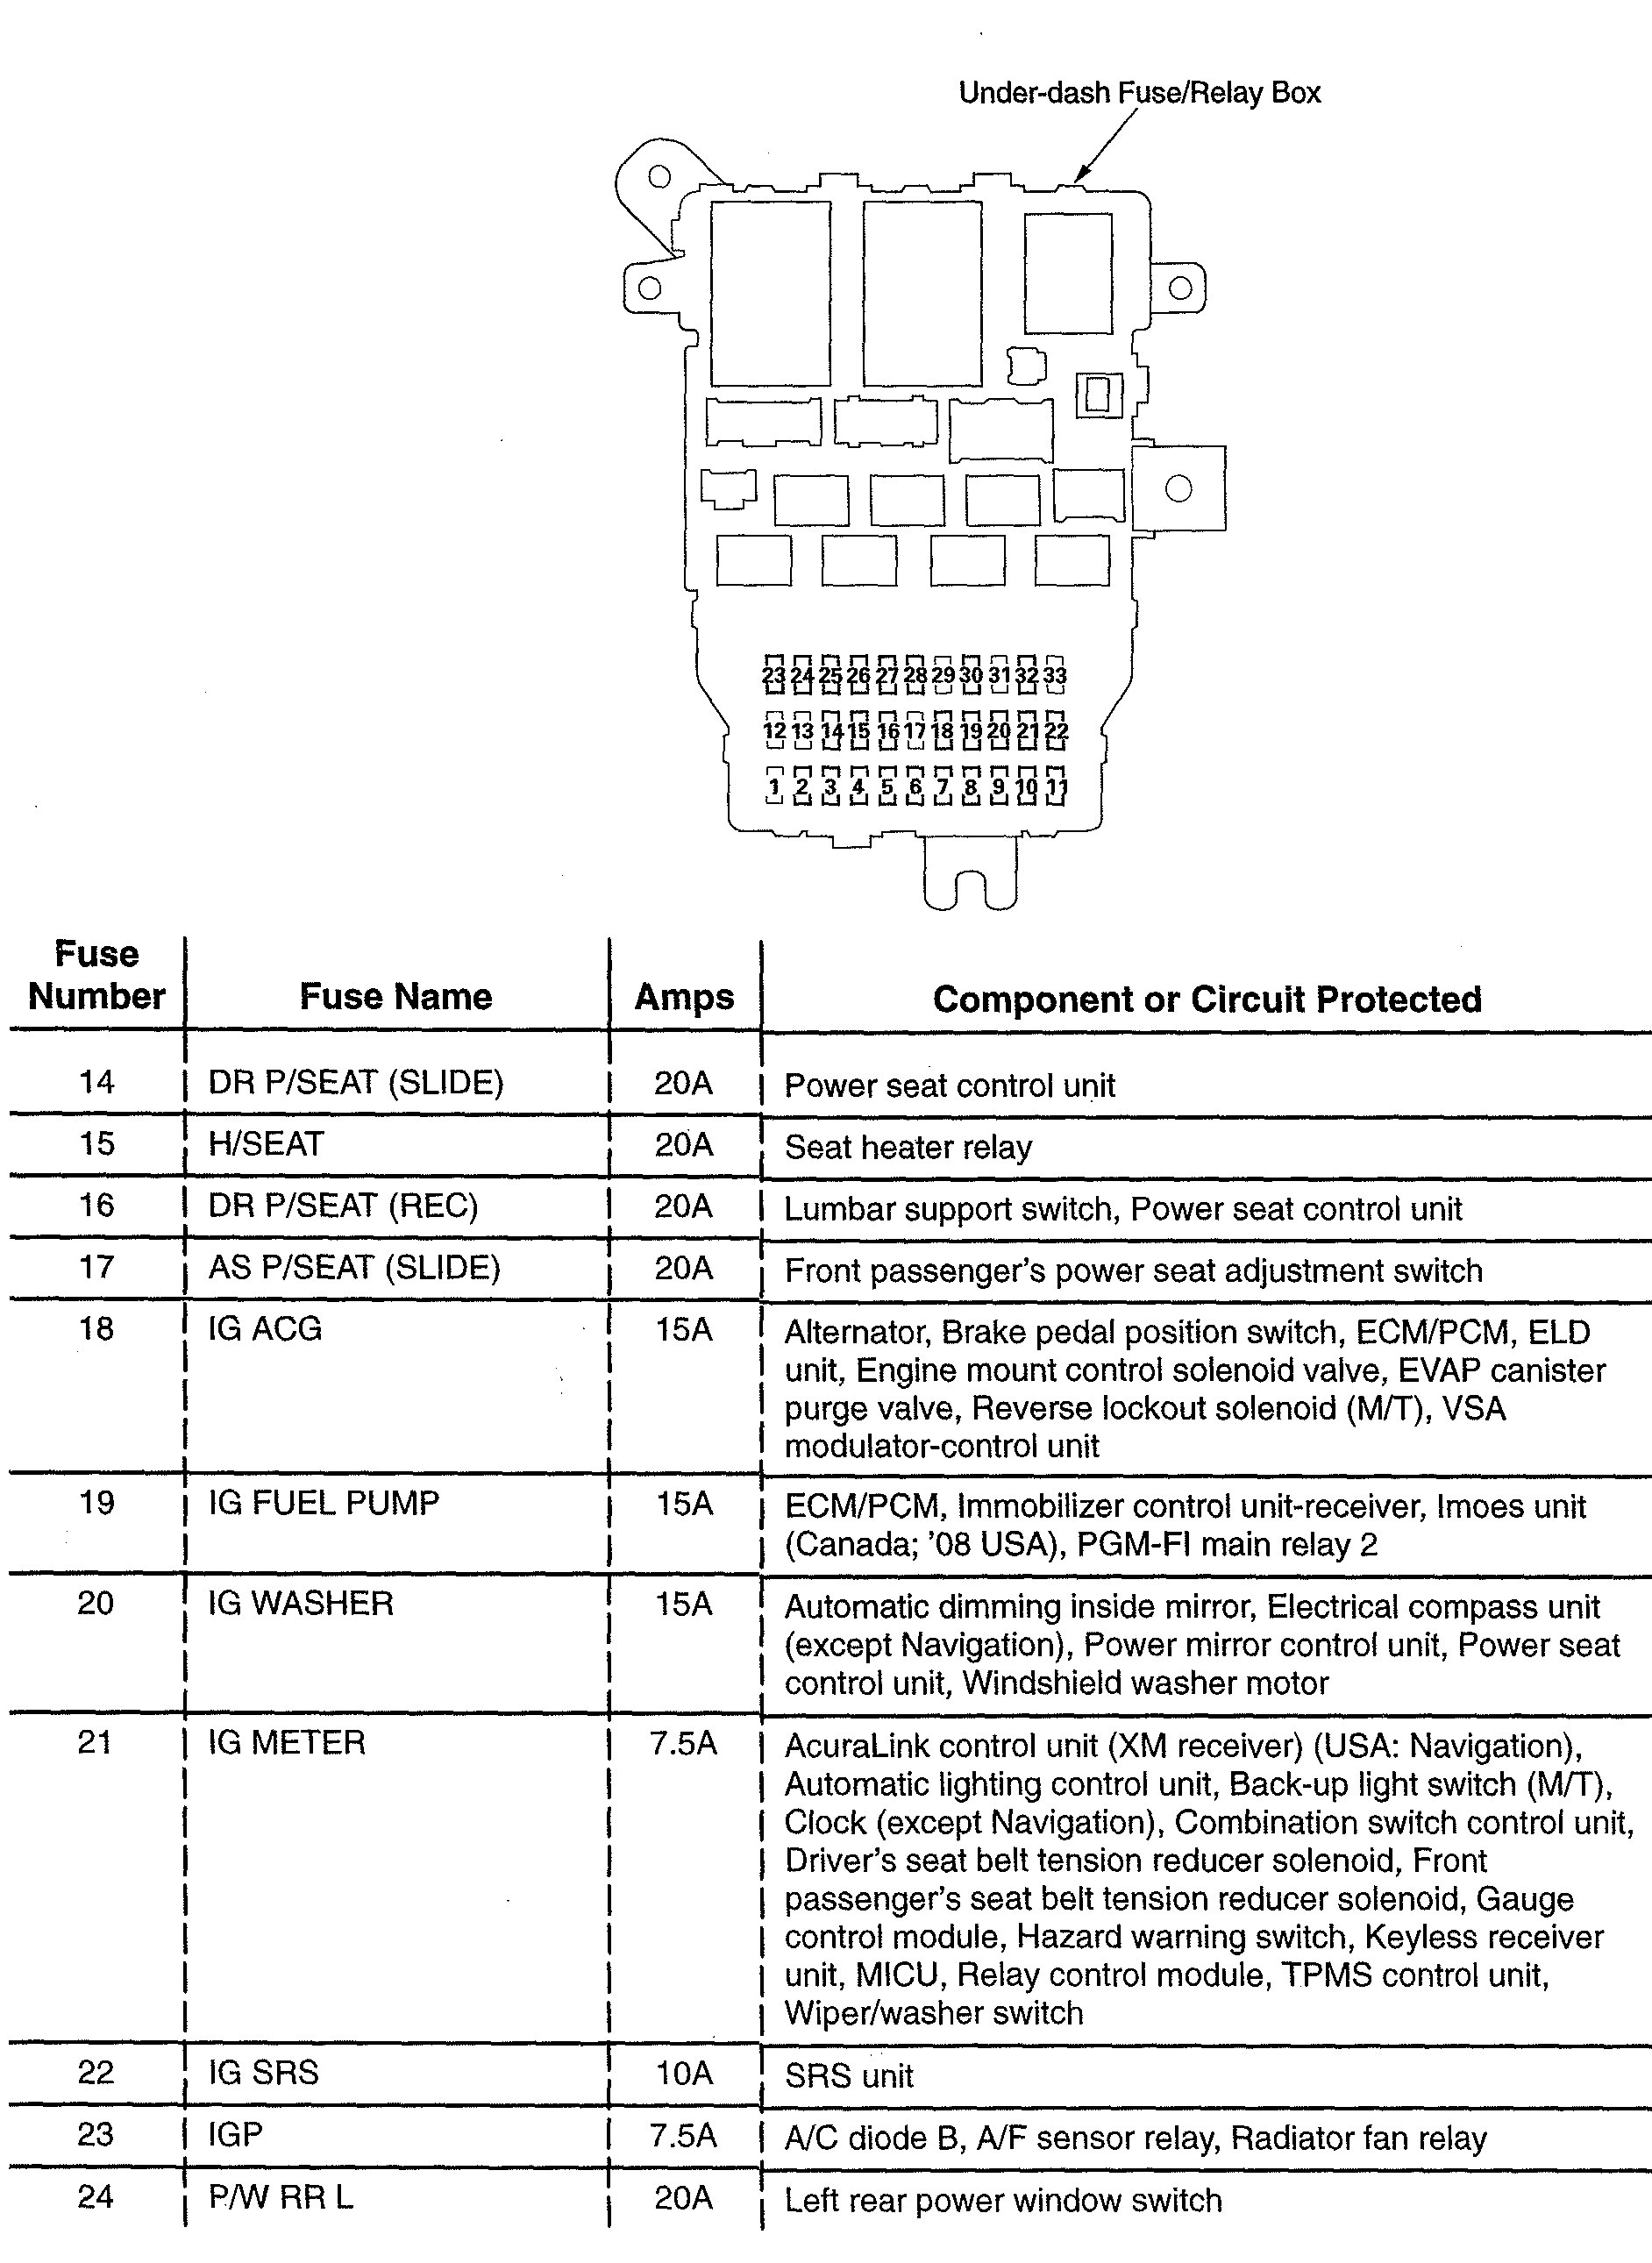 🏆 [DIAGRAM in Pictures Database] Acura Tl Fuse Diagram Just Download or  Read Fuse Diagram - DASHBOARD-LAMP.ONYXUM.COMComplete Diagram Picture Database - Onyxum.com